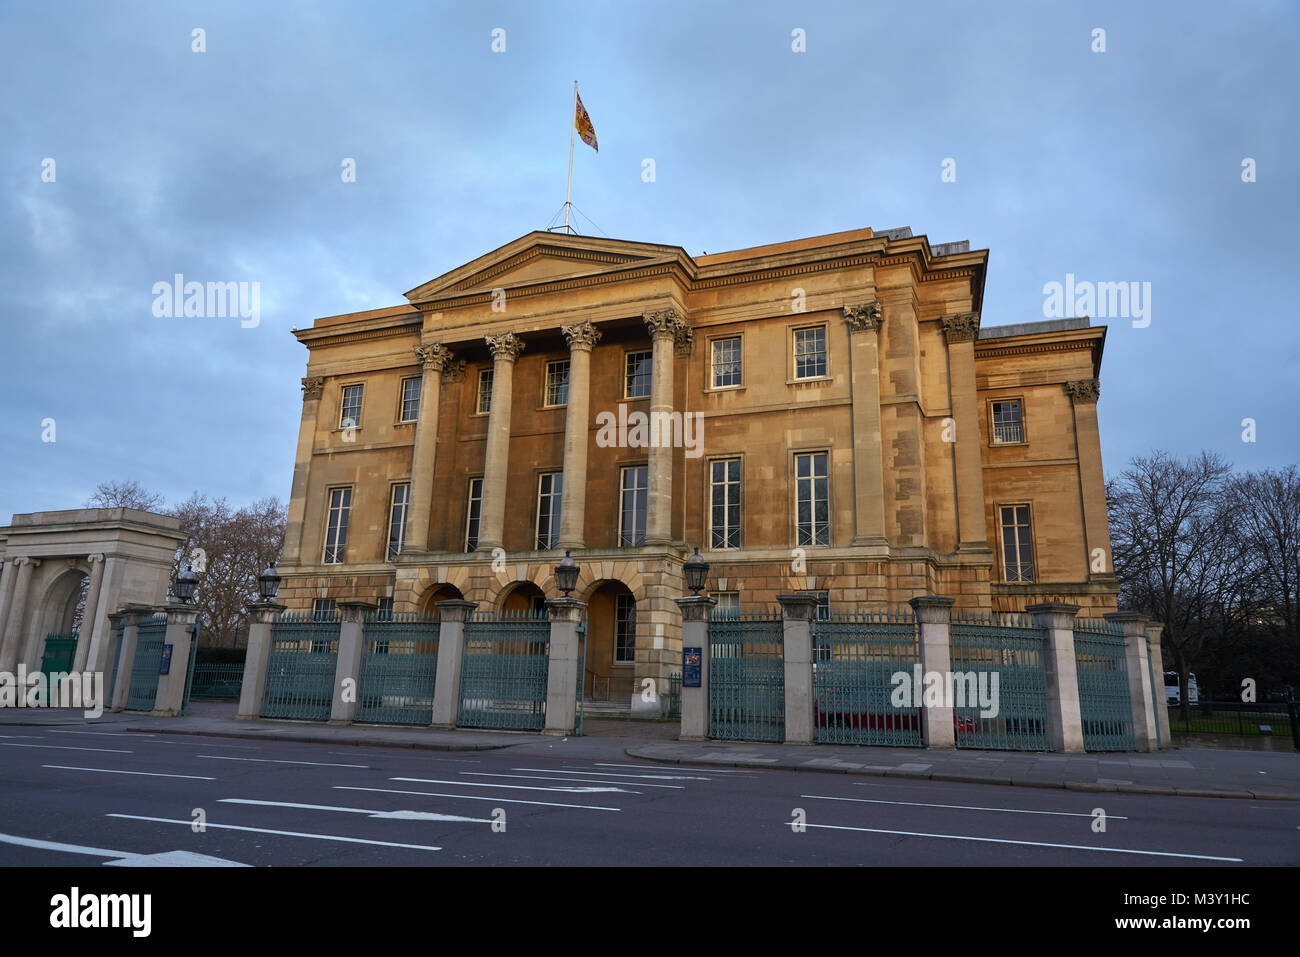 apsley house london - Stock Image